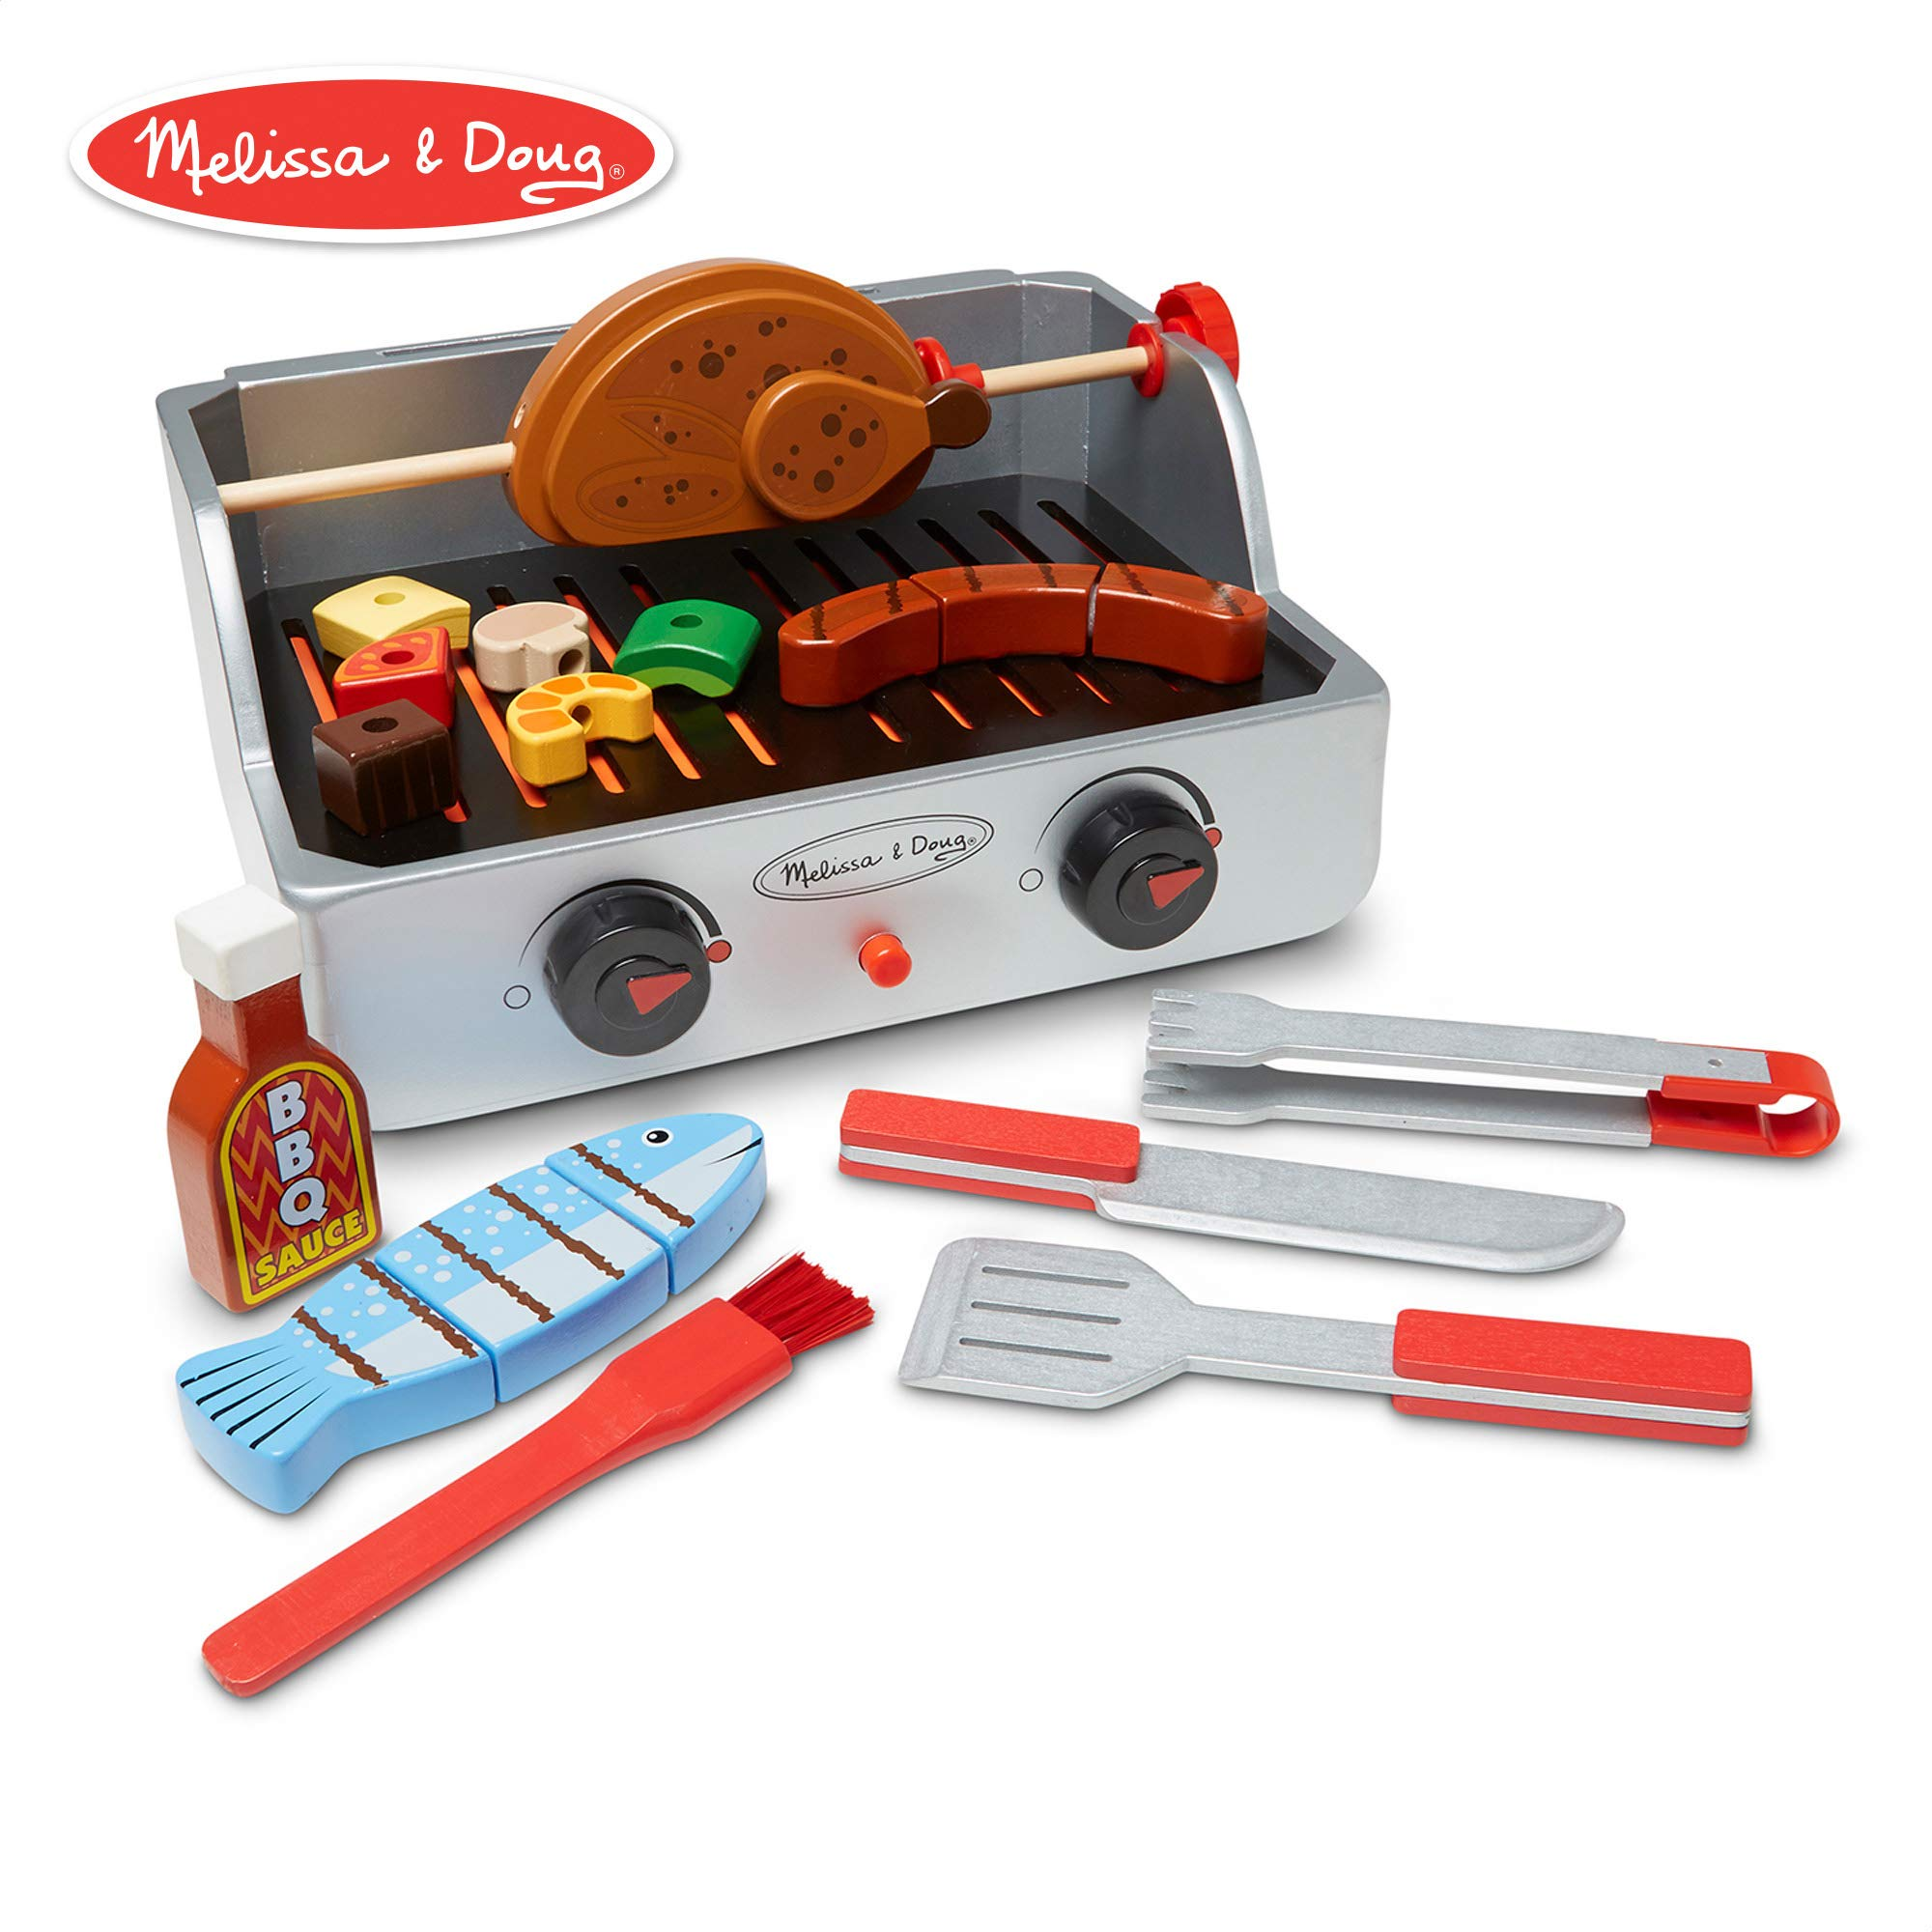 Melissa & Doug Wooden Rotisserie & Grill Barbecue Play Set (24 Pieces, Pretend Play Food Toy)